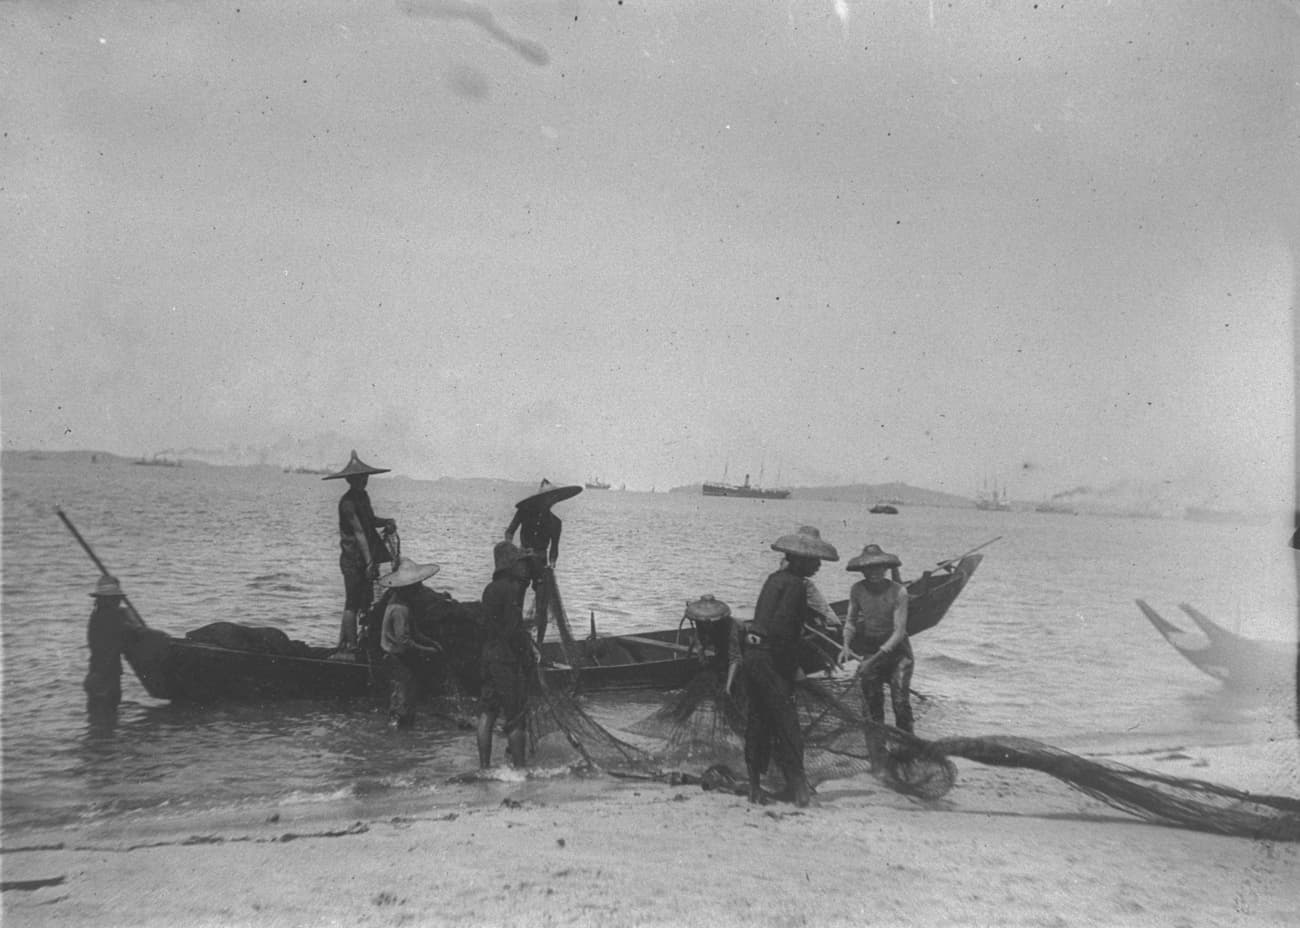 Fishermen at seashore, 1909